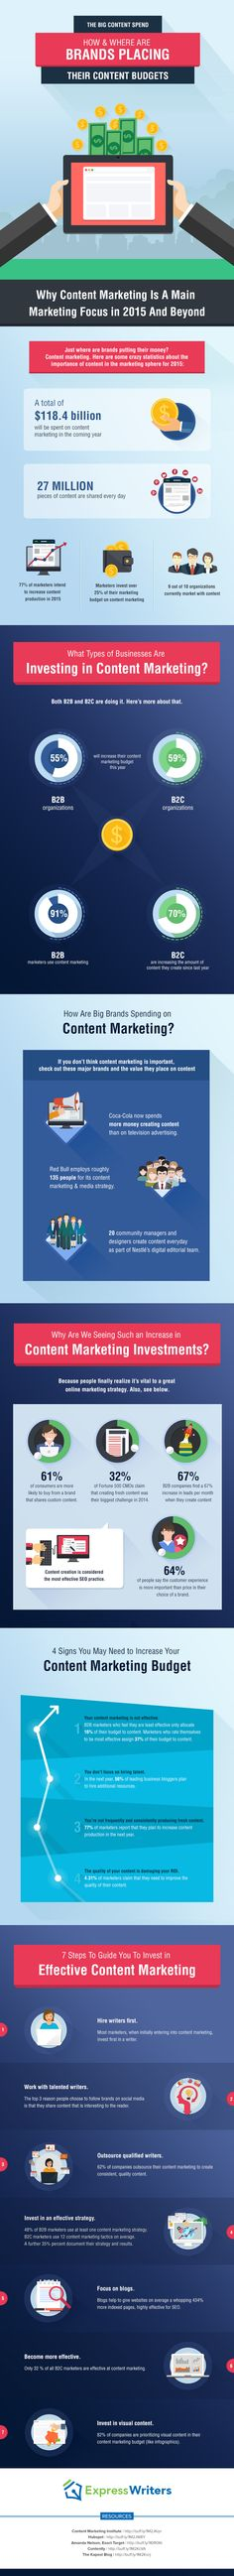 The Big Content Spend: How & Where Are Brands Placing Their Content Budgets [Infographic]